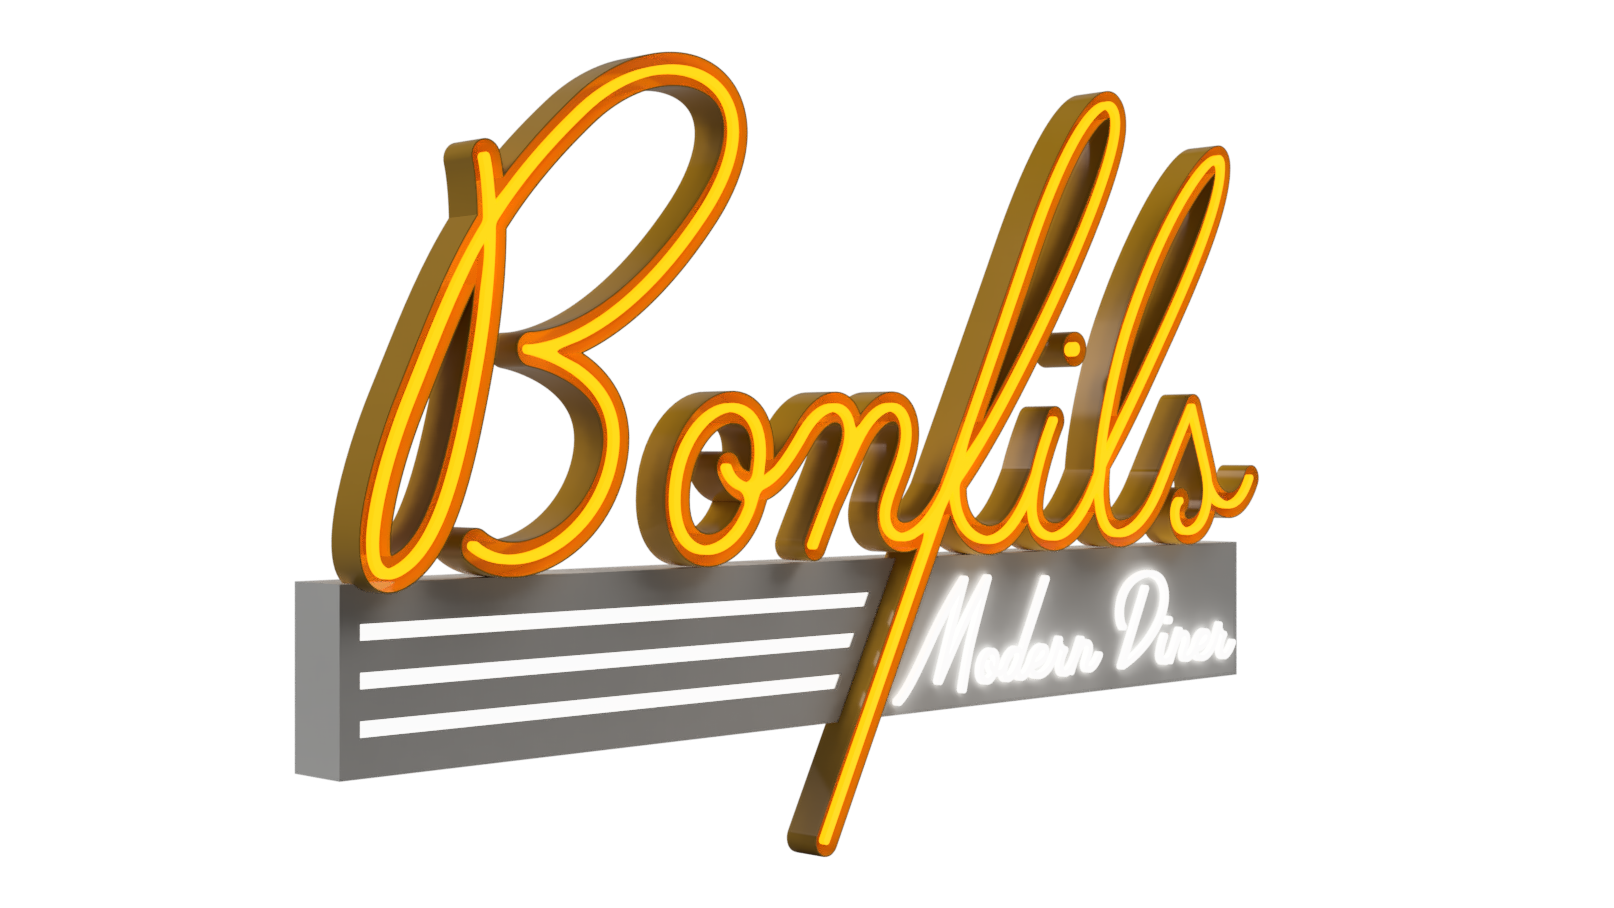 Bonfils Main Sign V1 2018 Jan 11 09 22 41pm 000 Customizedview22096929587